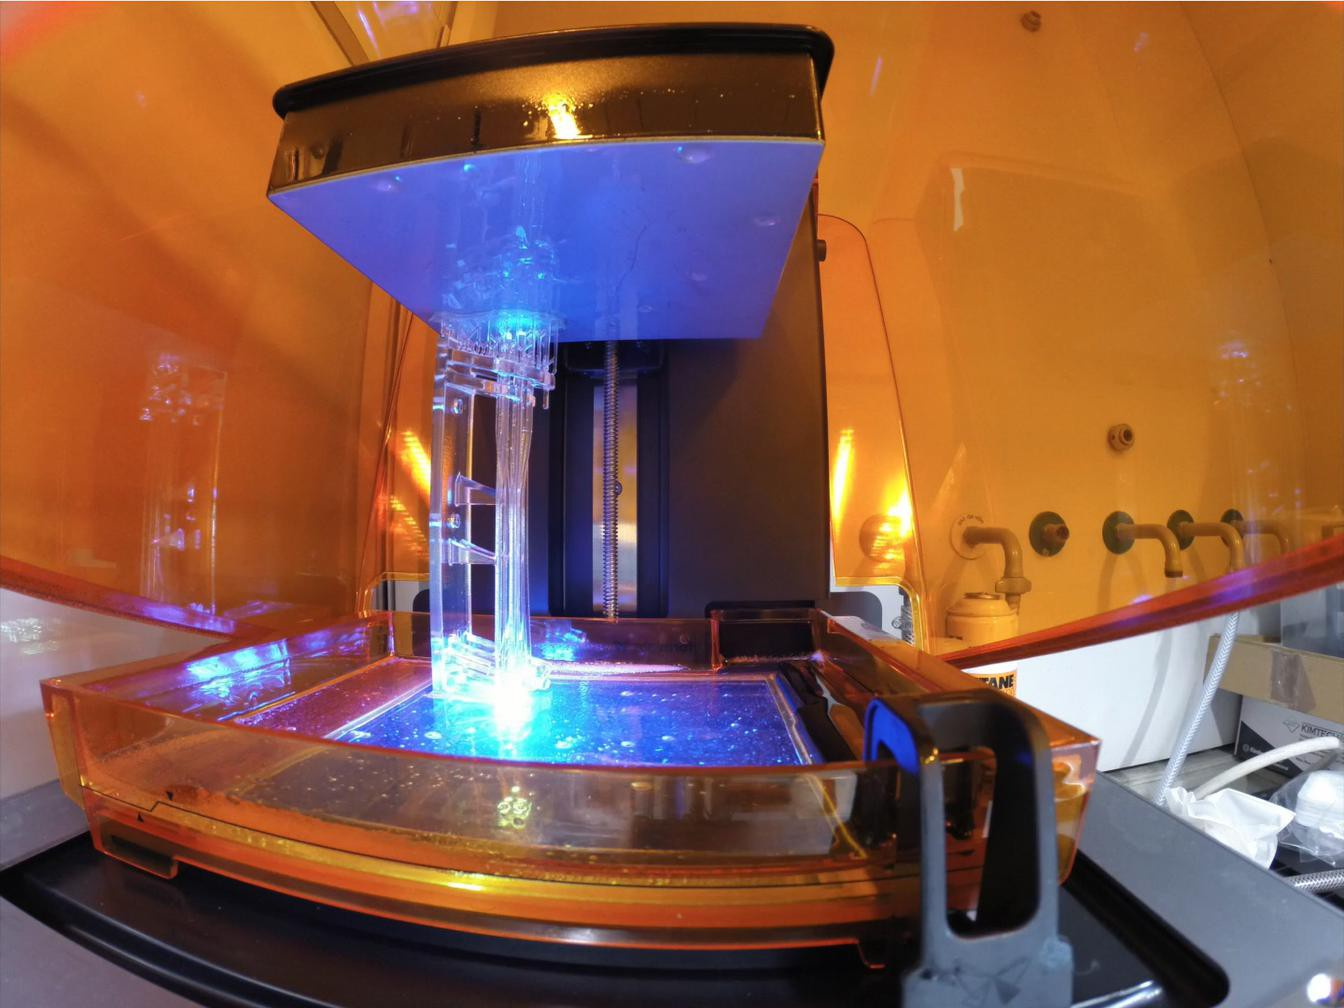 The stereolithography 3D printing process. Photo via A. Osterwalder/EPFL.